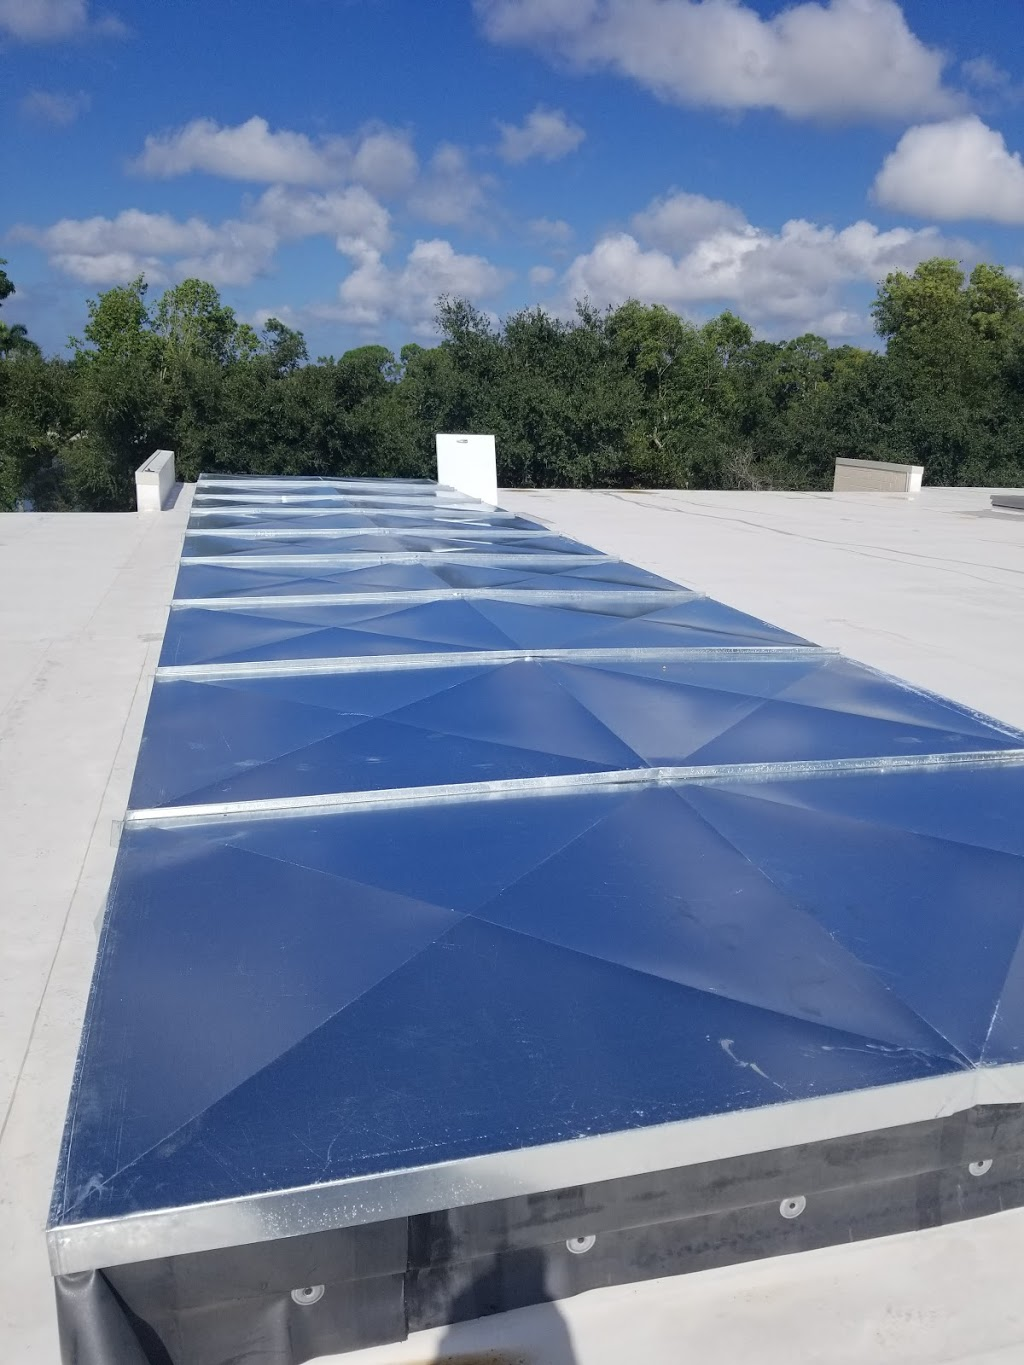 Air Duct Systems, Inc. - general contractor  | Photo 1 of 7 | Address: 2106 W Central Blvd, Orlando, FL 32805, USA | Phone: (407) 839-3313